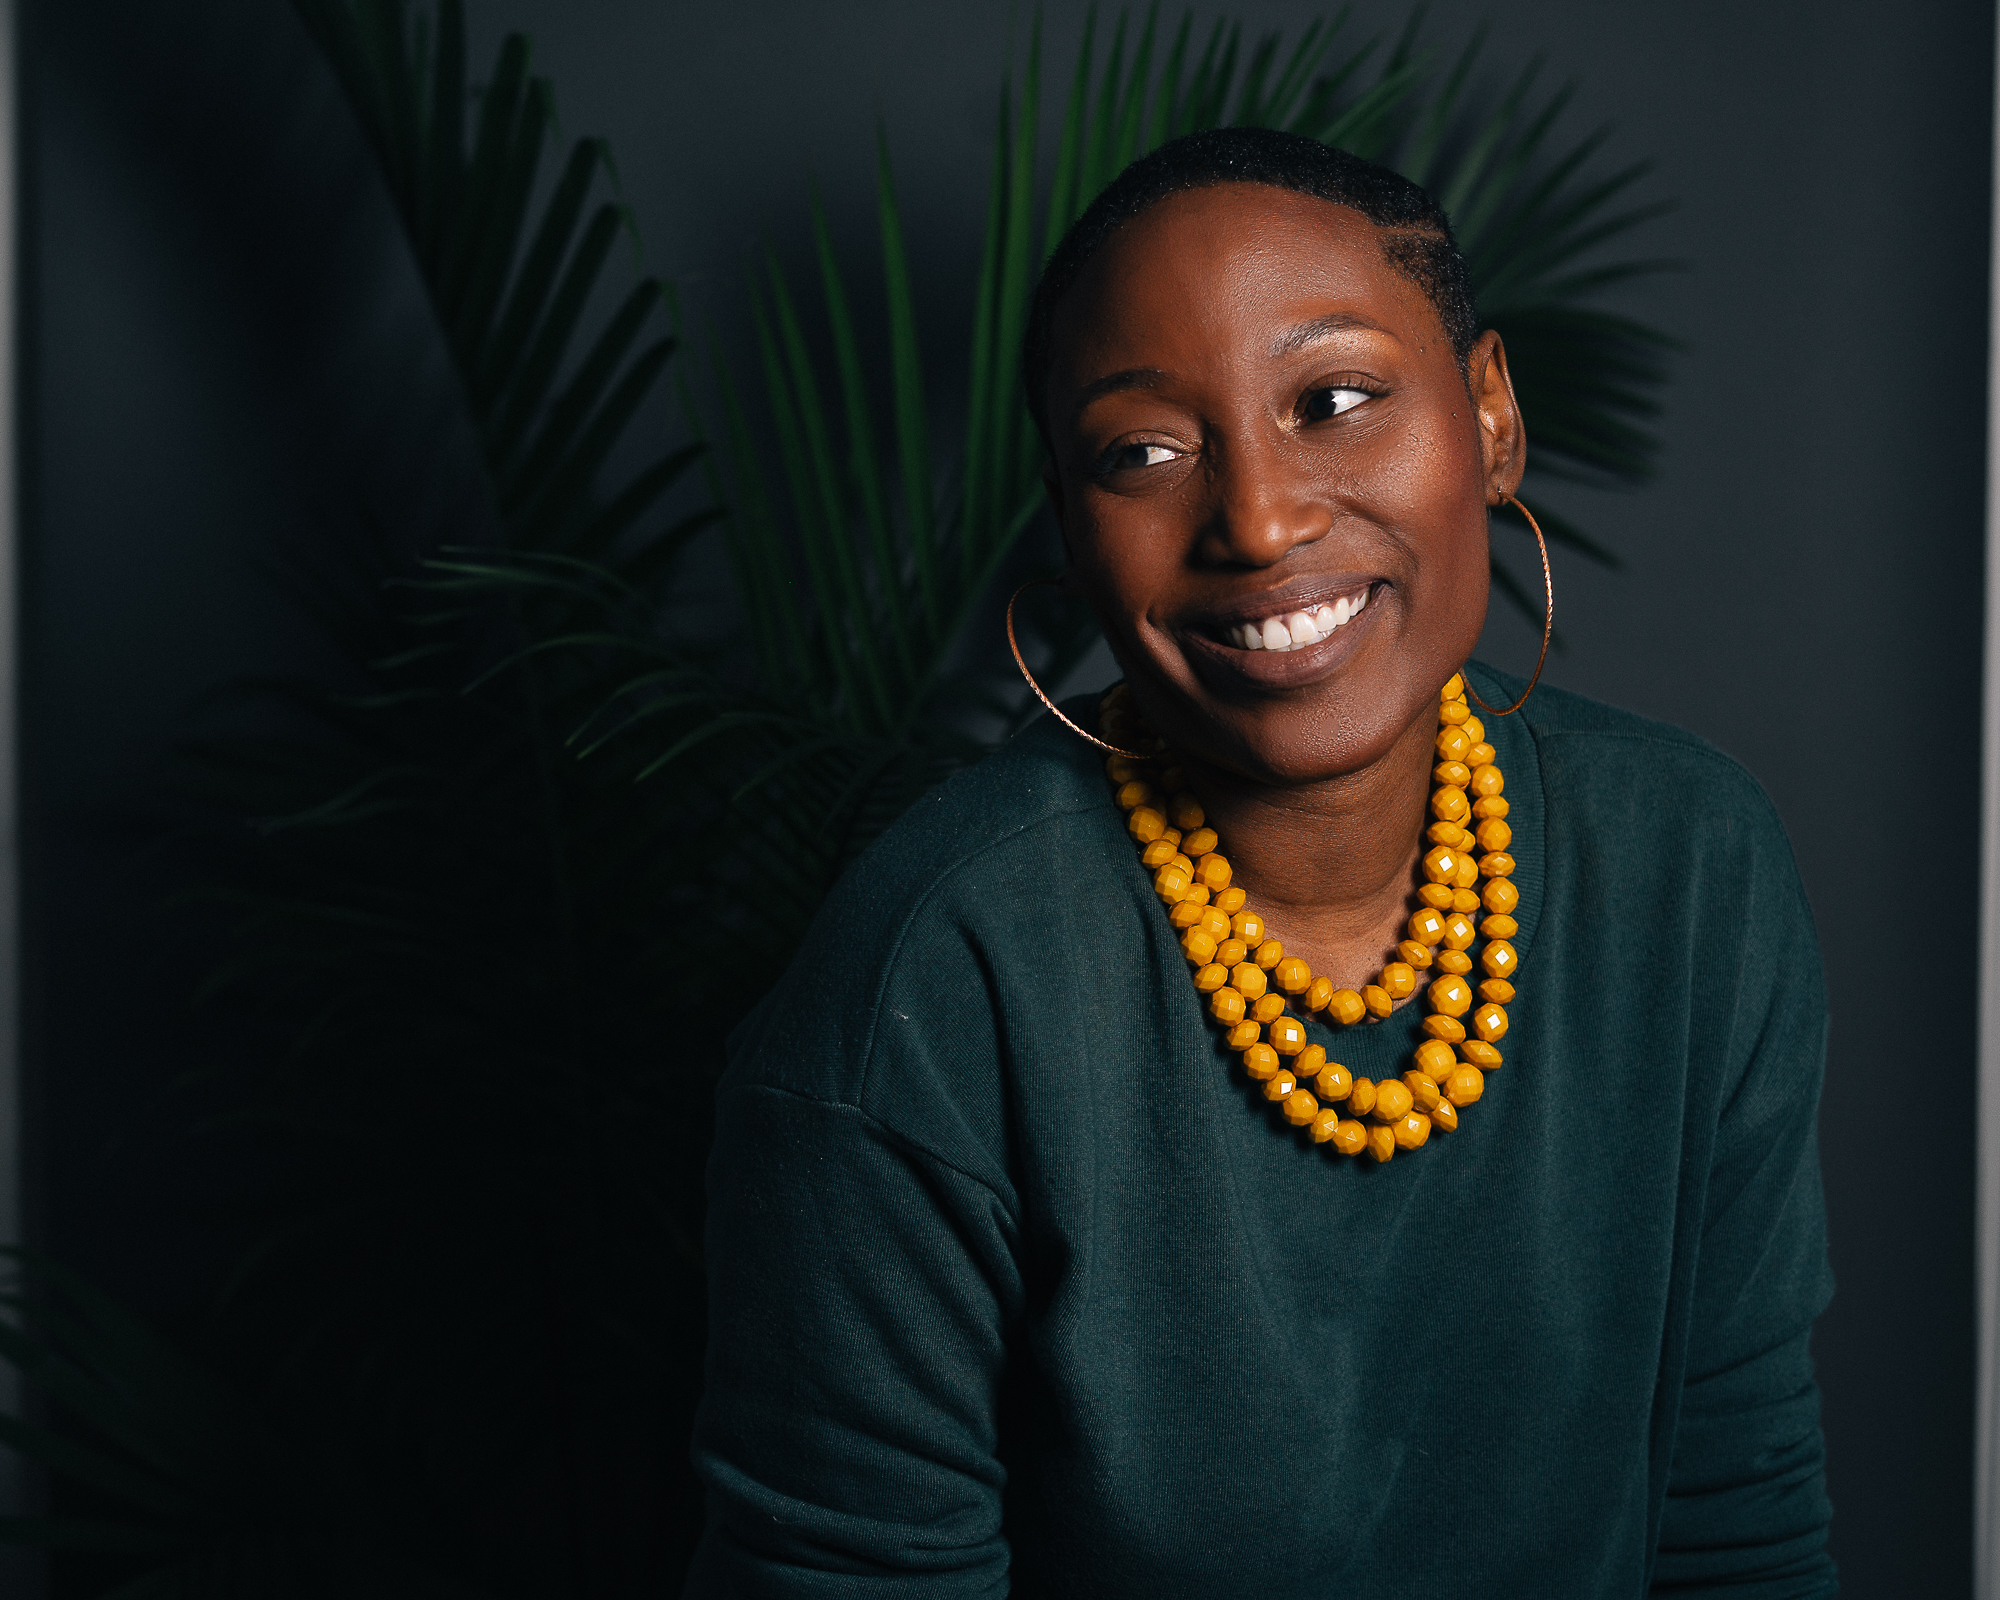 toni black dallas photographer in green sweater with yellow necklace